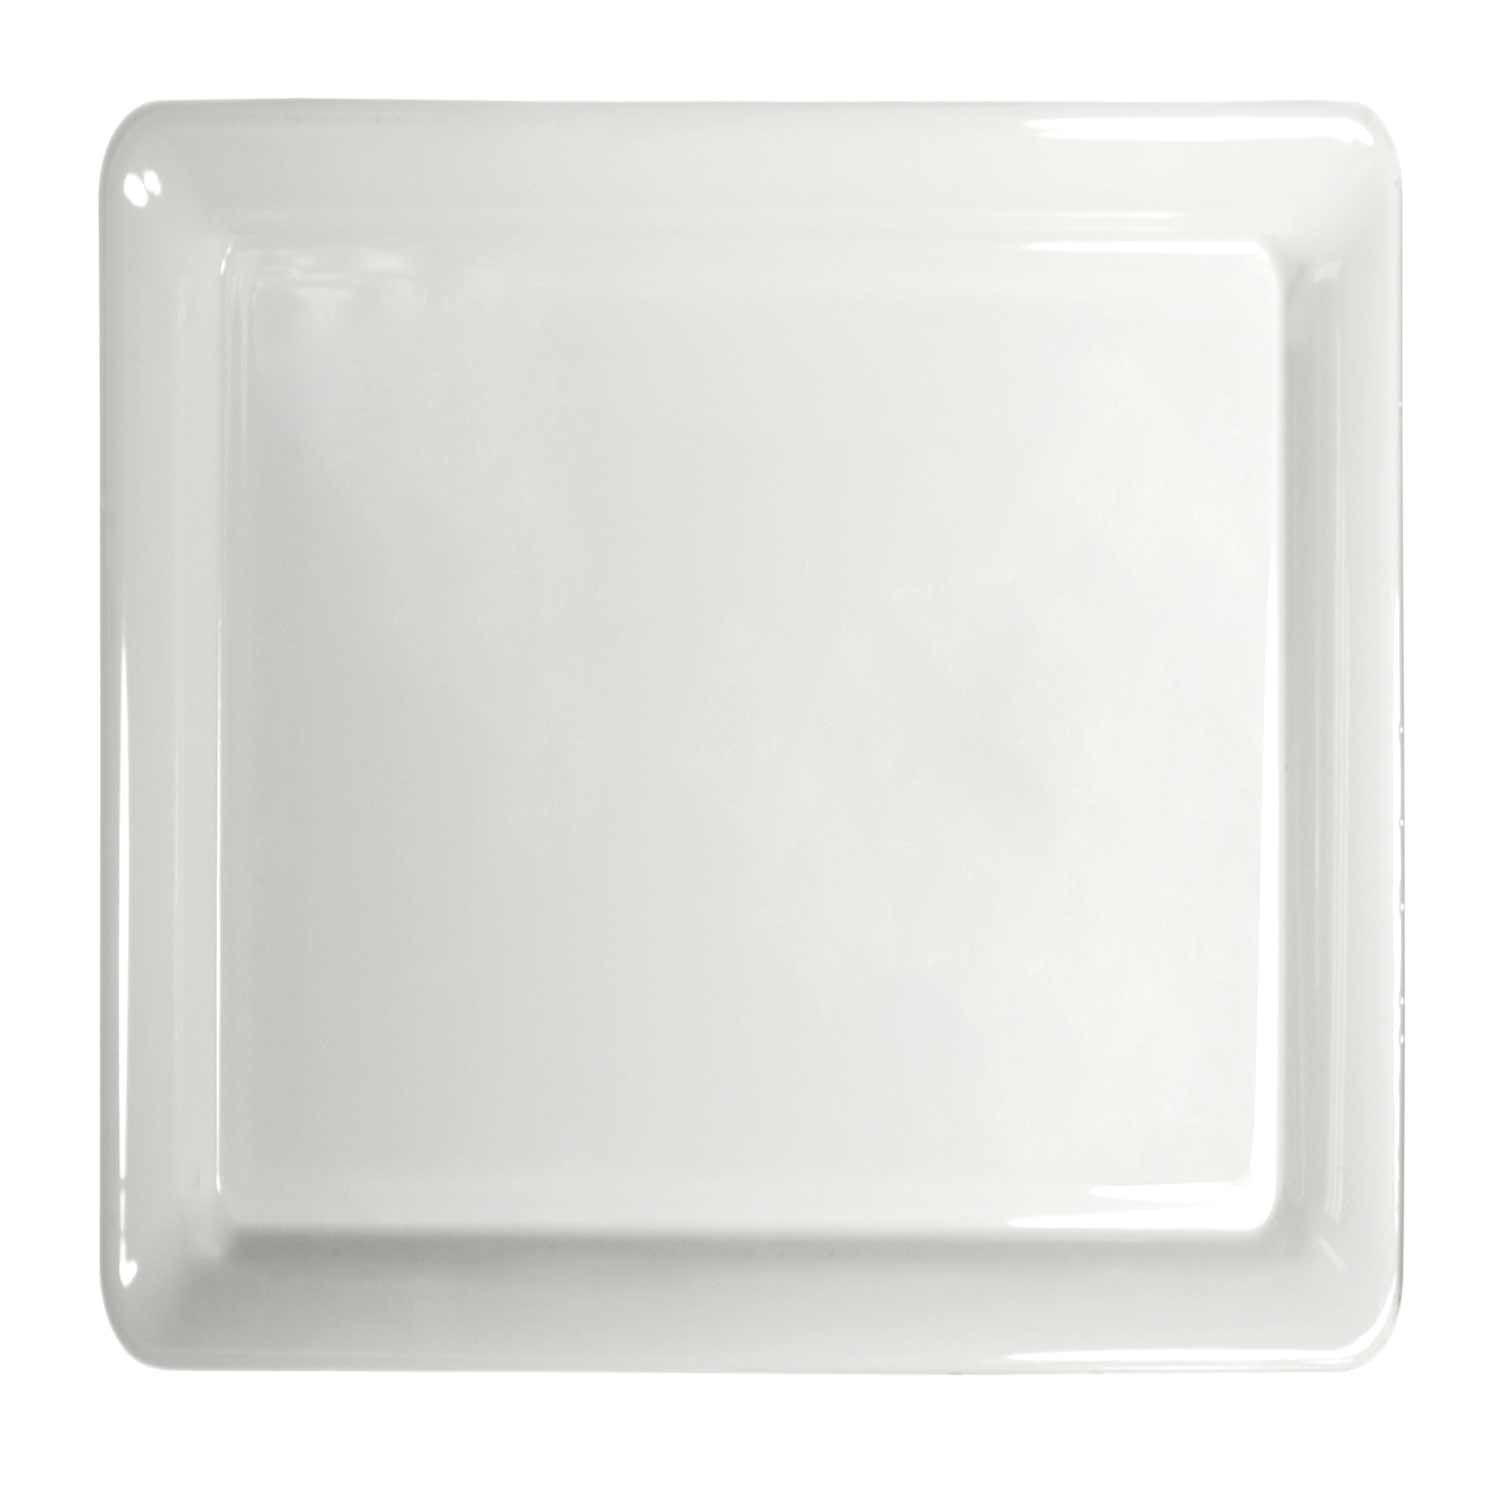 Party Essentials N161604 Heavy Duty Plastic Square Tray, 16